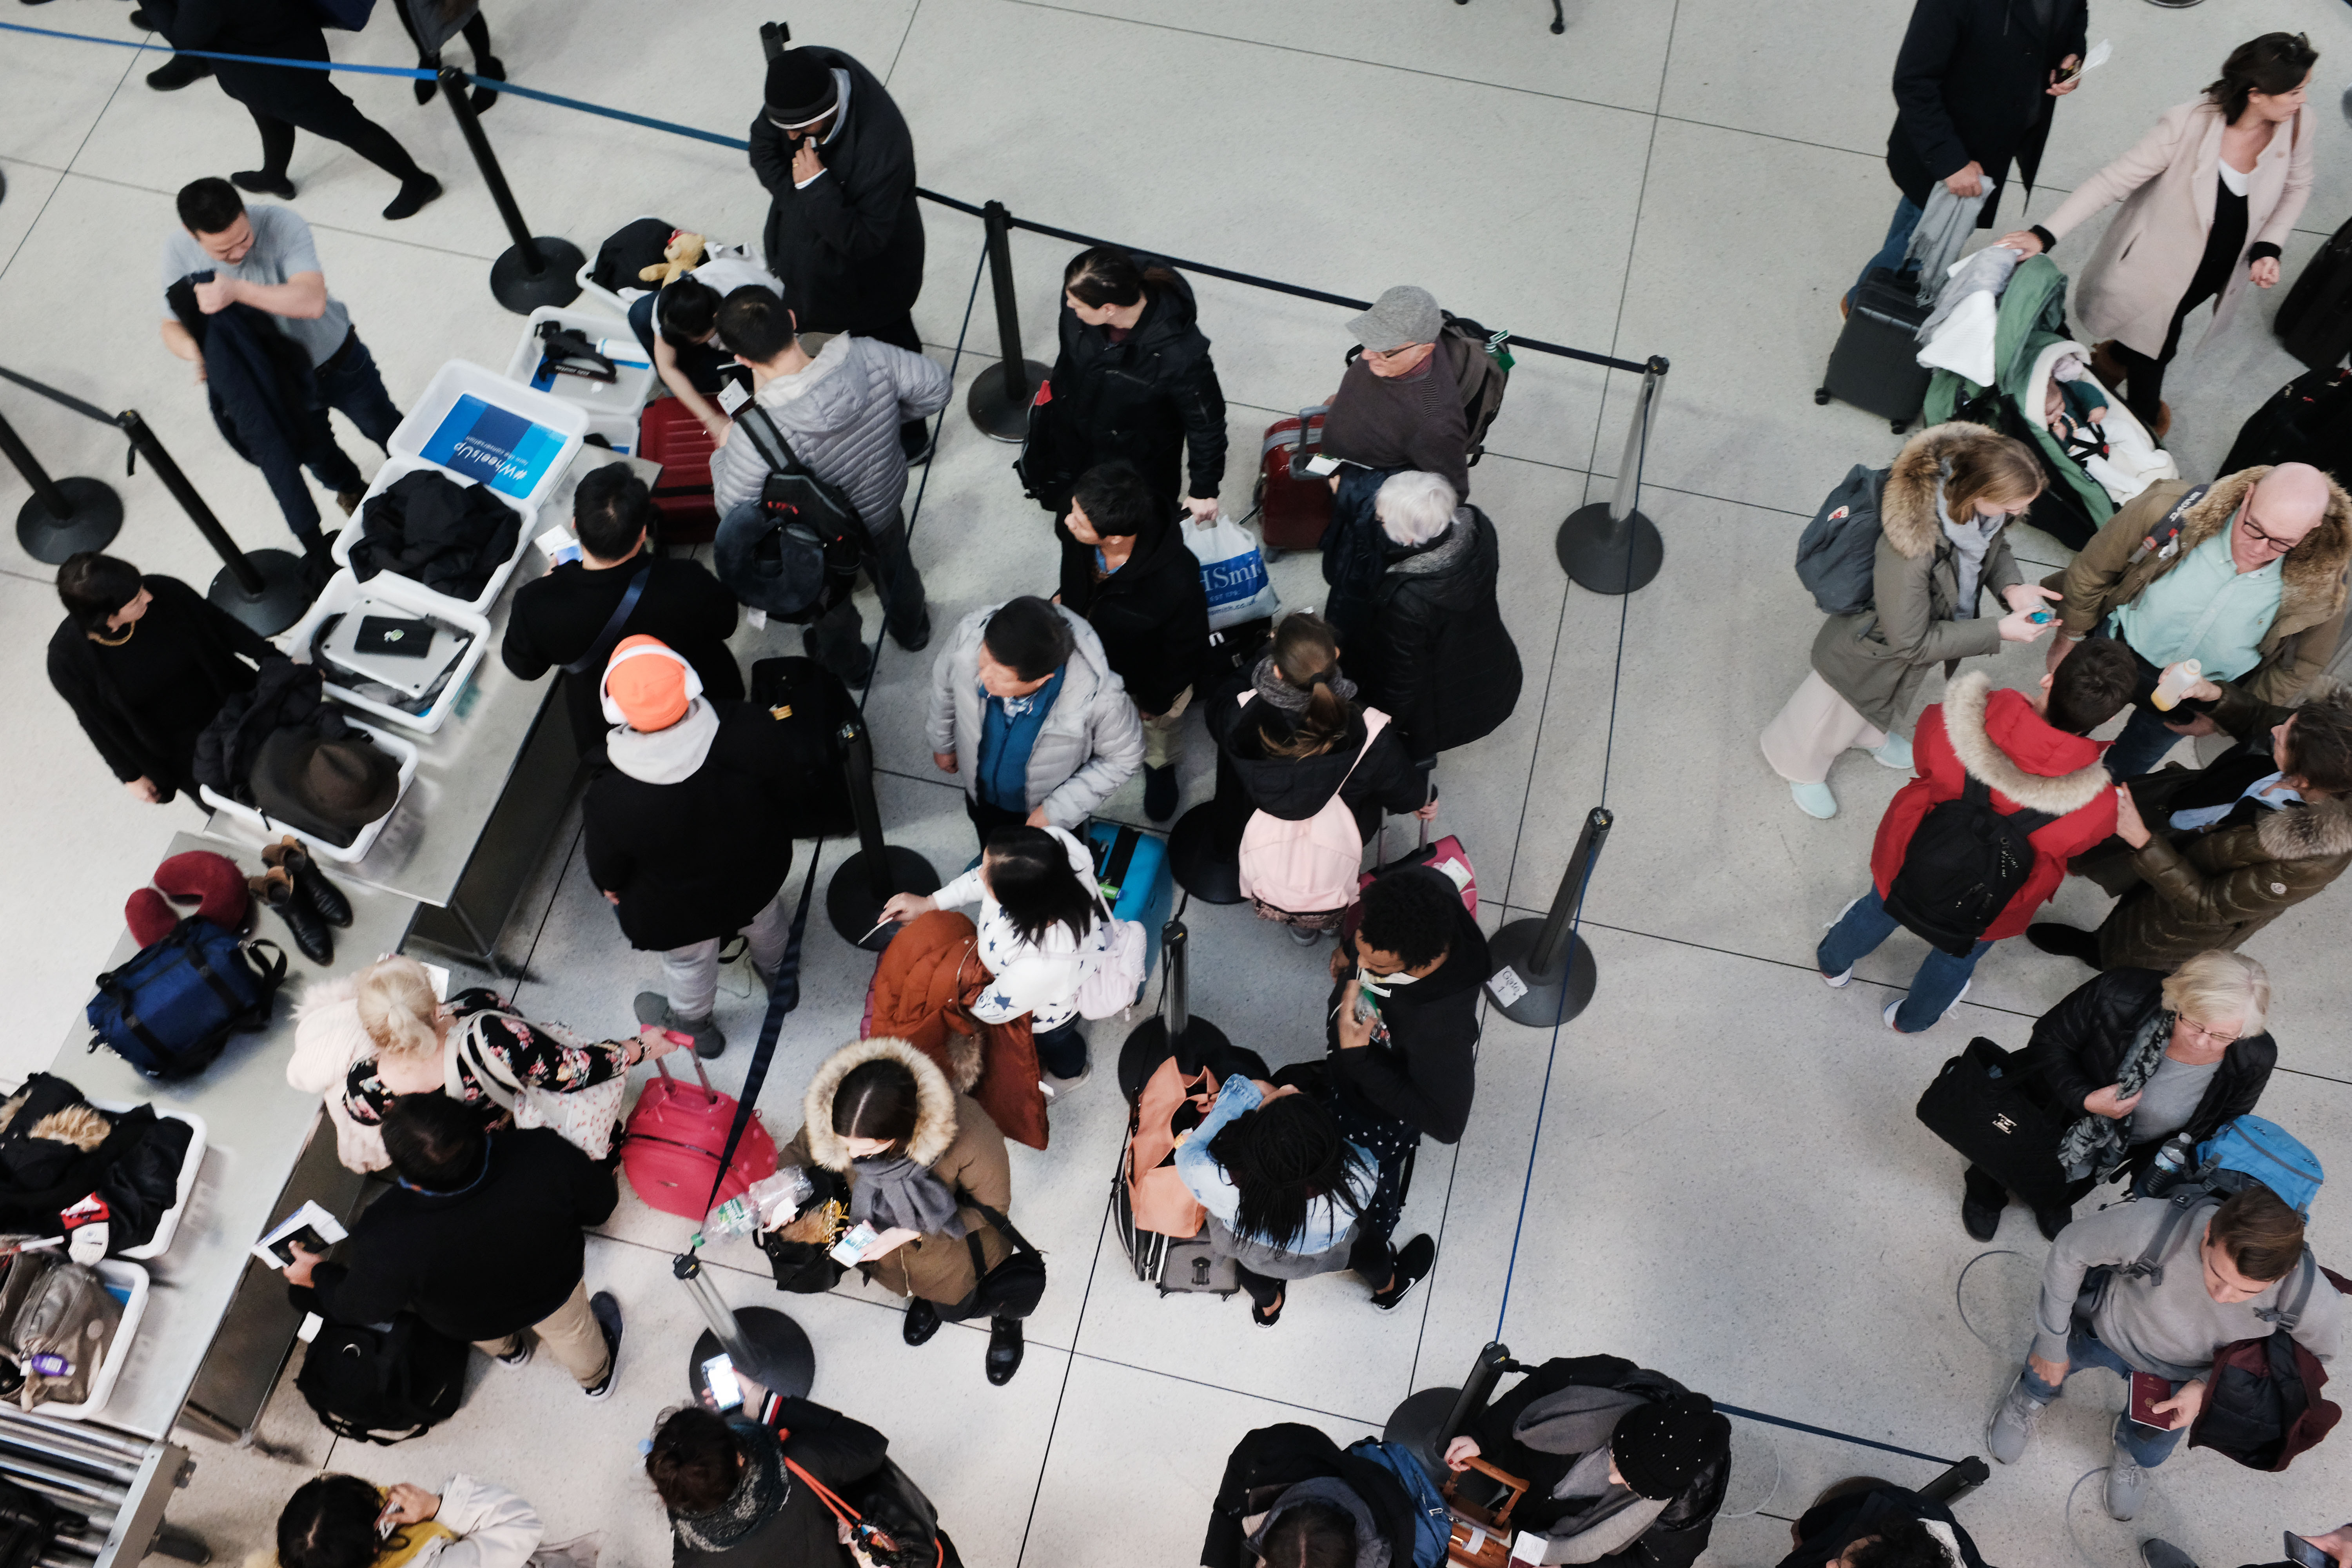 Passengers wait in a TSA line at JFK airport on Wednesday in New York City.